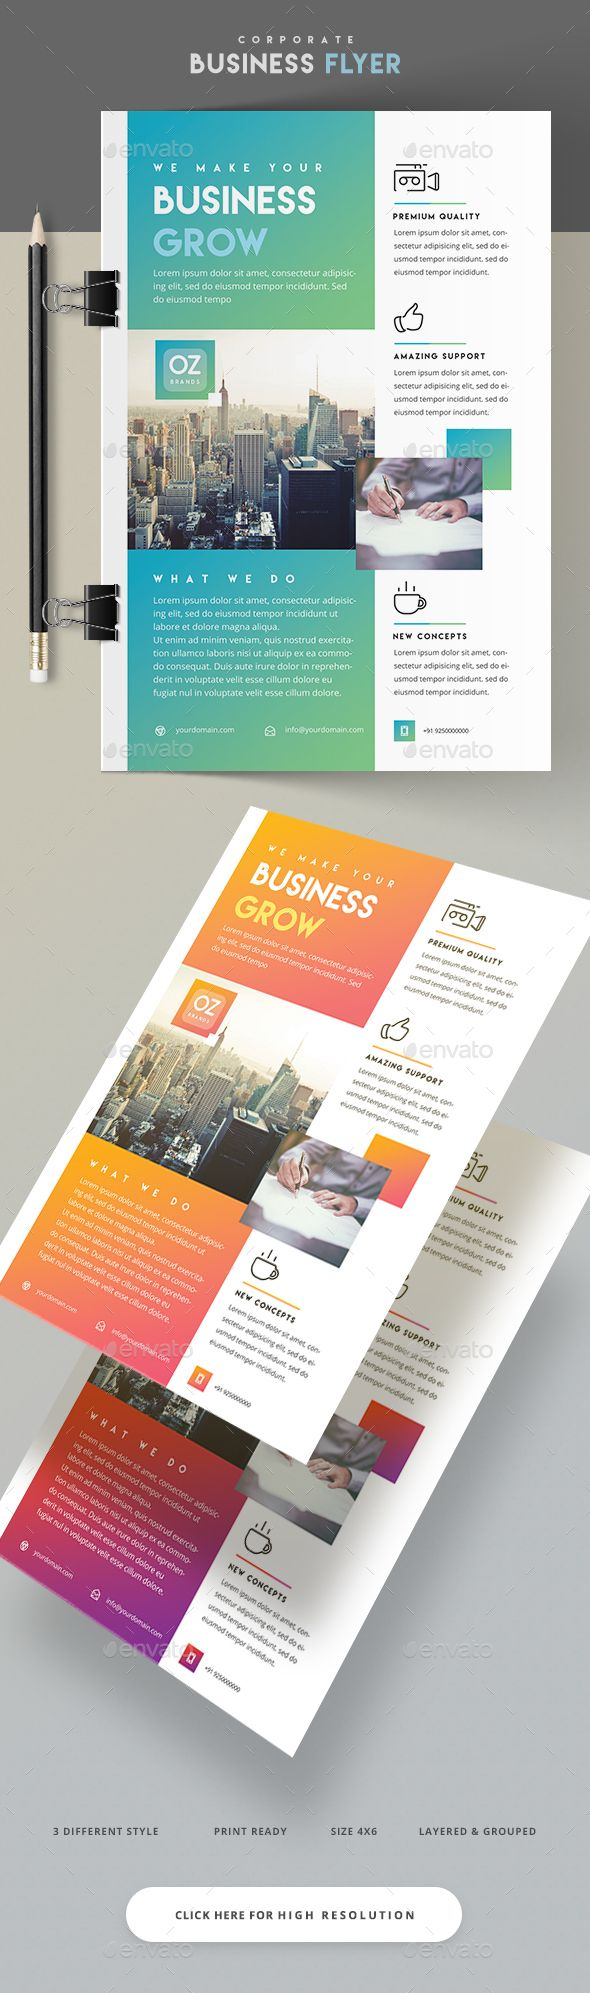 Business Flyer  — PSD Template #graphicriver flyer #business flyer • Download ➝ https://graphicriver.net/item/business-flyer/18262575?ref=pxcr